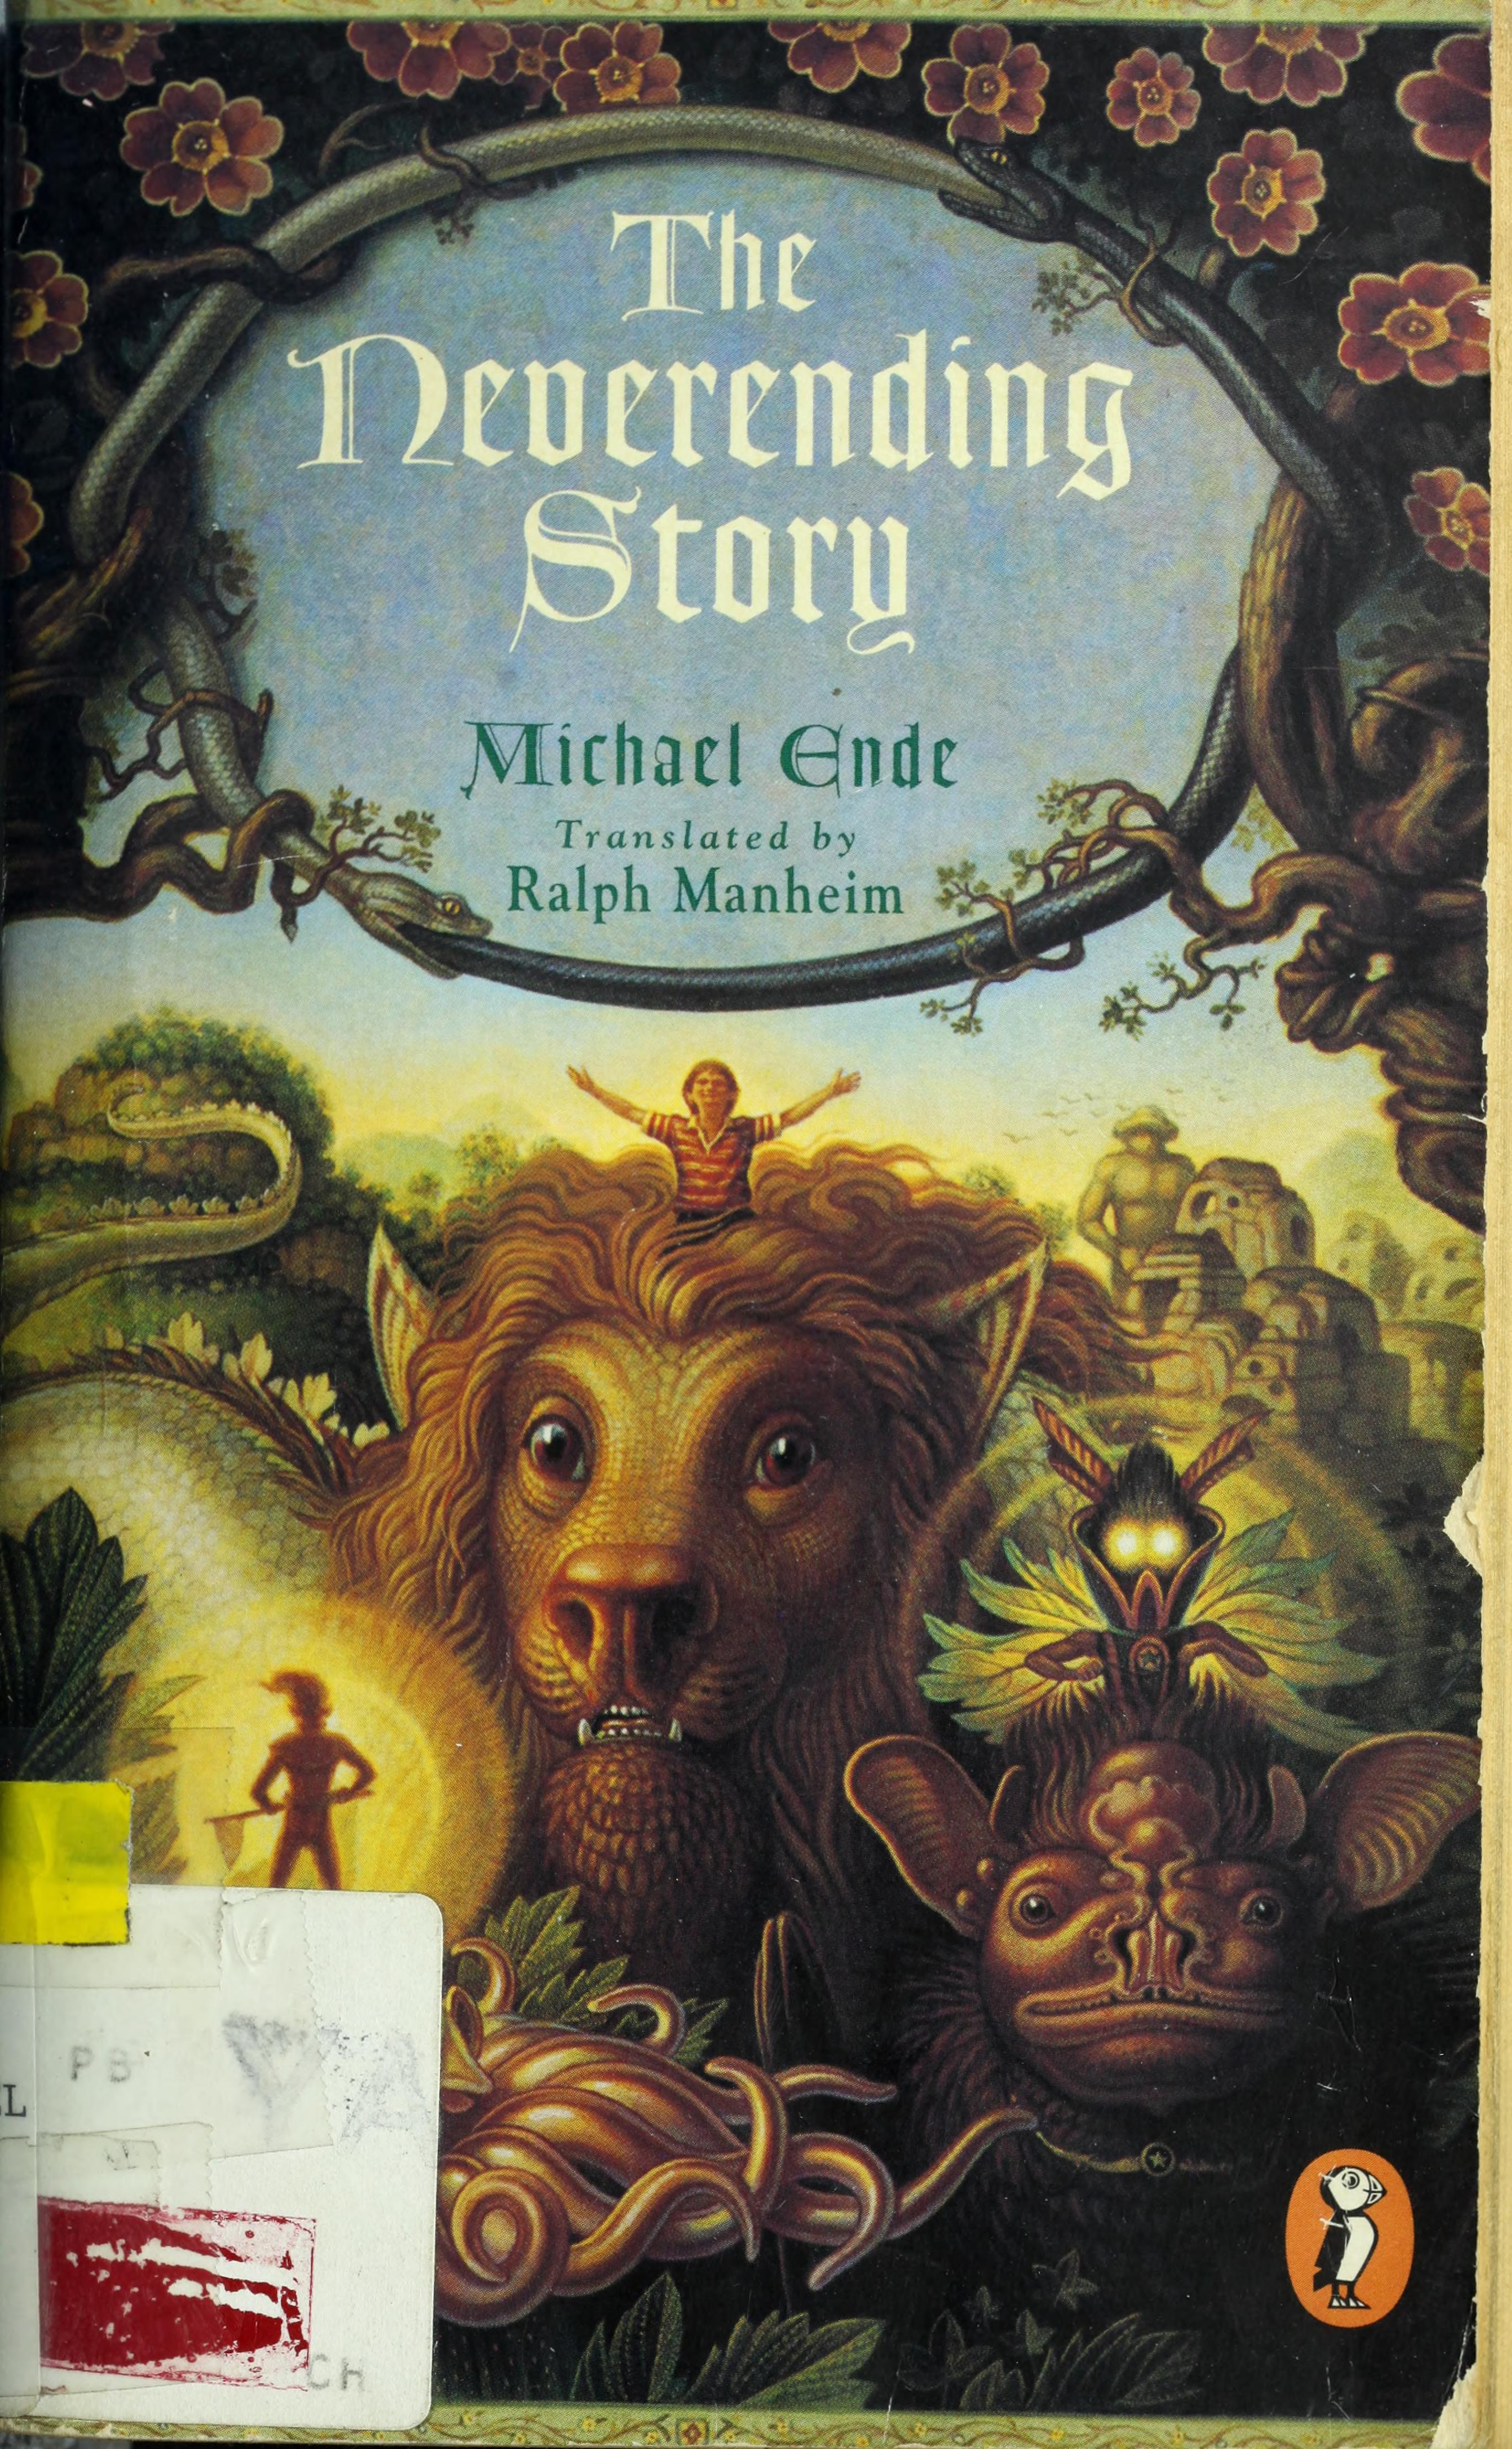 The Neverending Story Michael Ende Free Download Borrow And Streaming Internet Archive